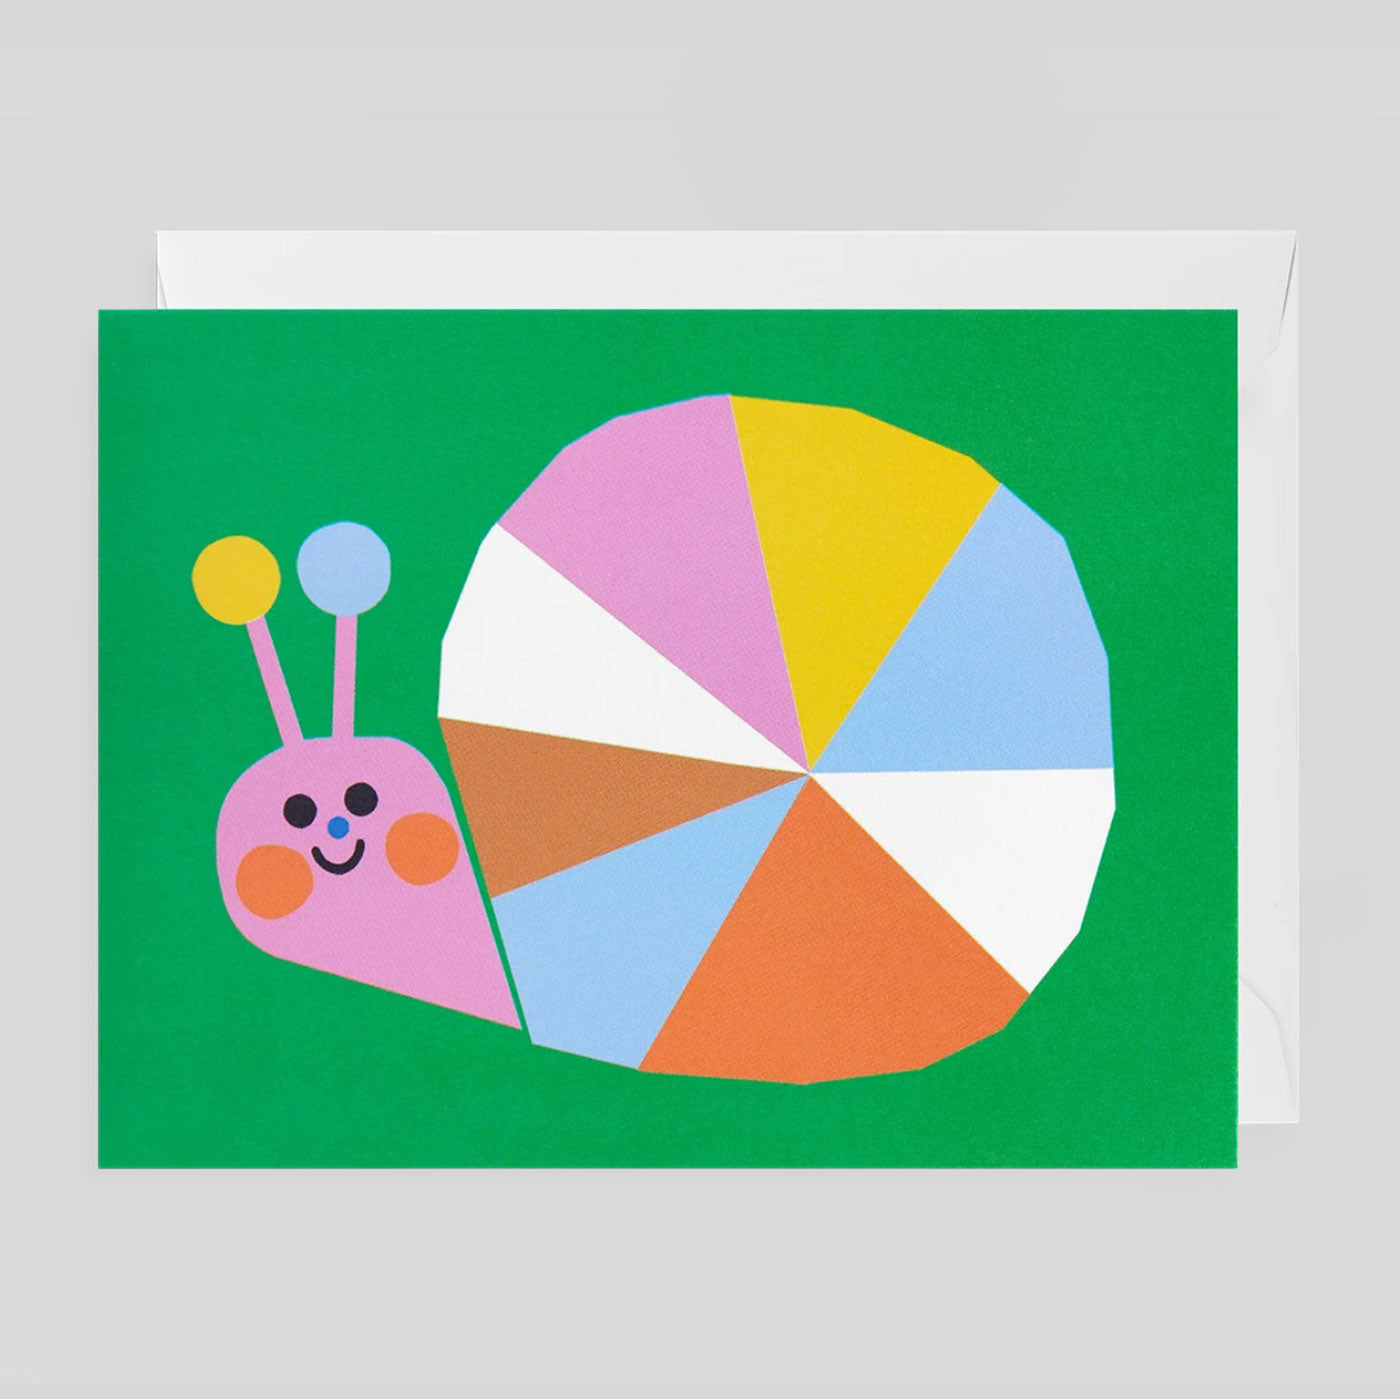 Ekaterina Trukhan for Lagom - Snail Card - Colours May Vary